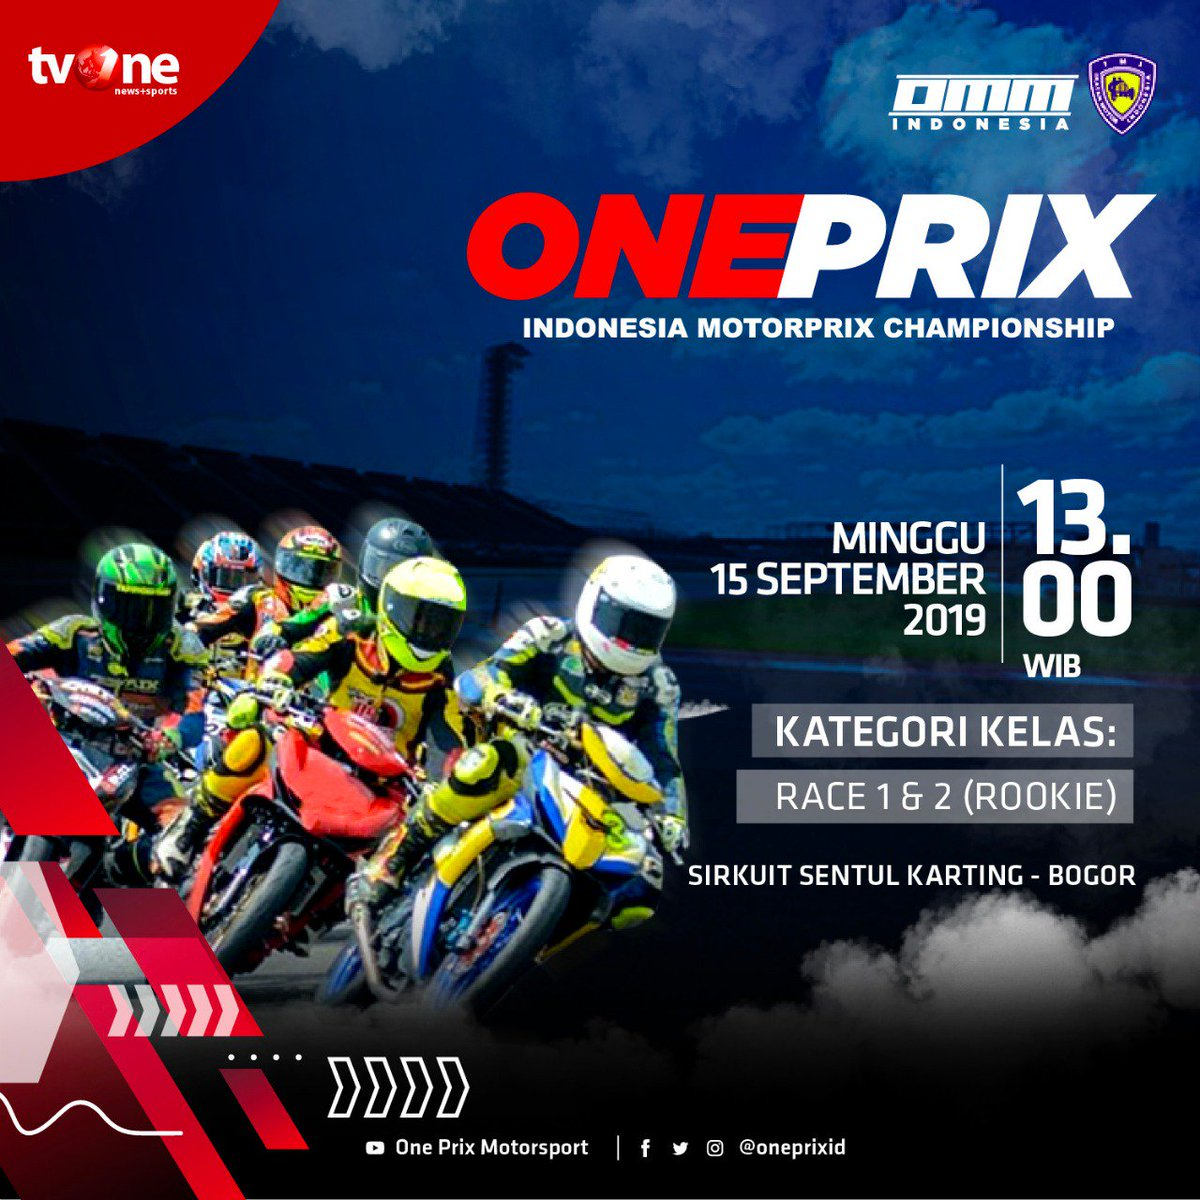 Jangan lewatkan race seru putaran 3 @oneprixid Indonesia Motorprix Championship kelas Rookie. Minggu, 15 September 2019 jam 13.00 WIB hanya di tvOne & streaming di tvOne connect android http://bit.ly/2EMxVdm  & ios https://apple.co/2CPK6U3   #Oneprix #OneprixSentul